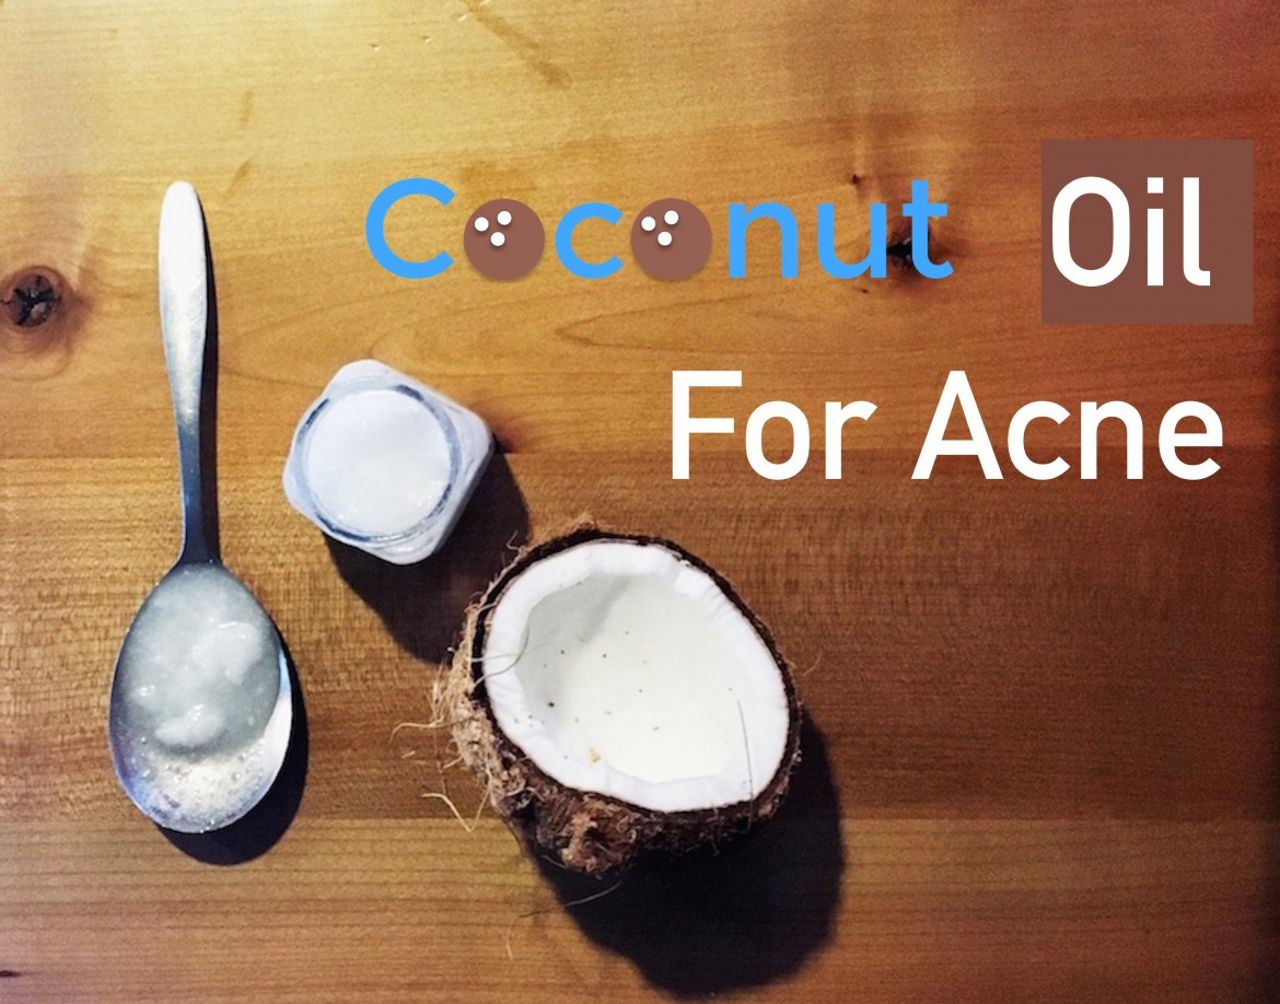 Does Coconut Oil Cause Acne or Cure Acne